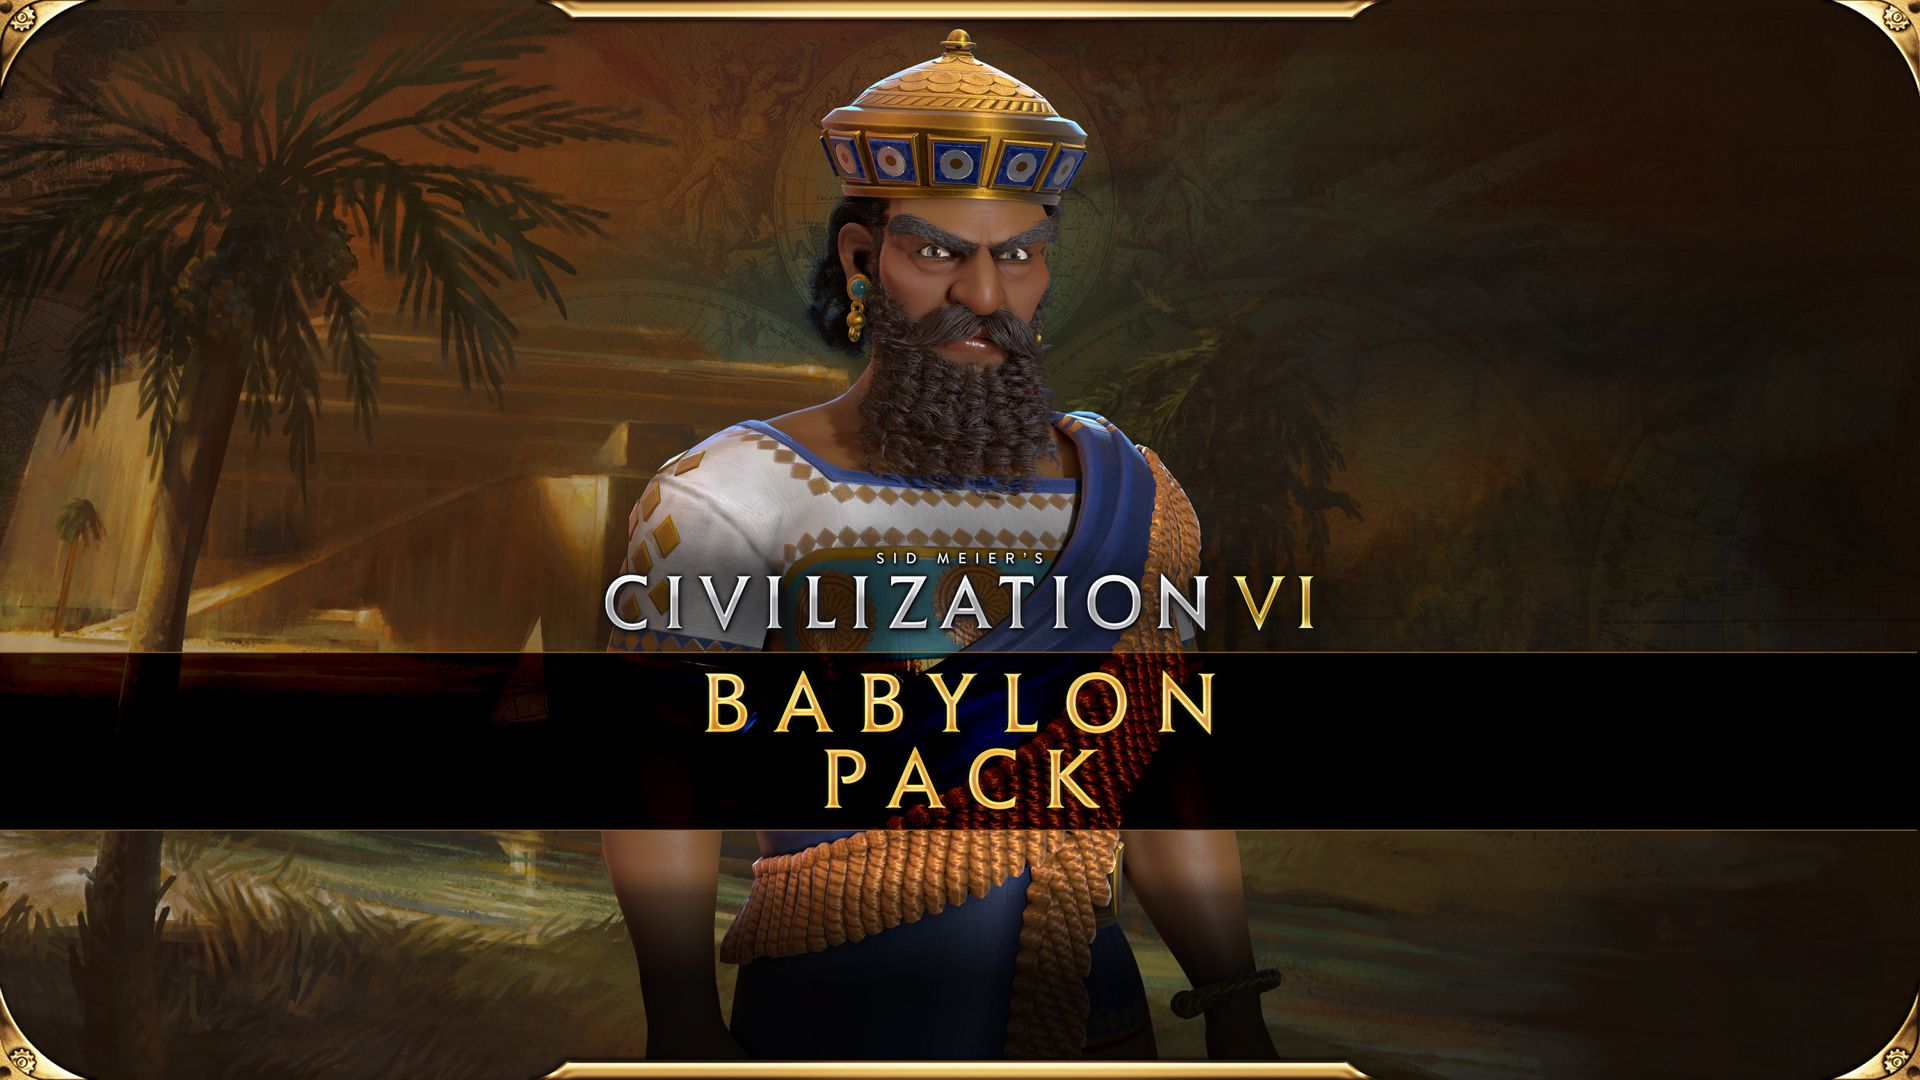 Civilization VI Babulon Pack